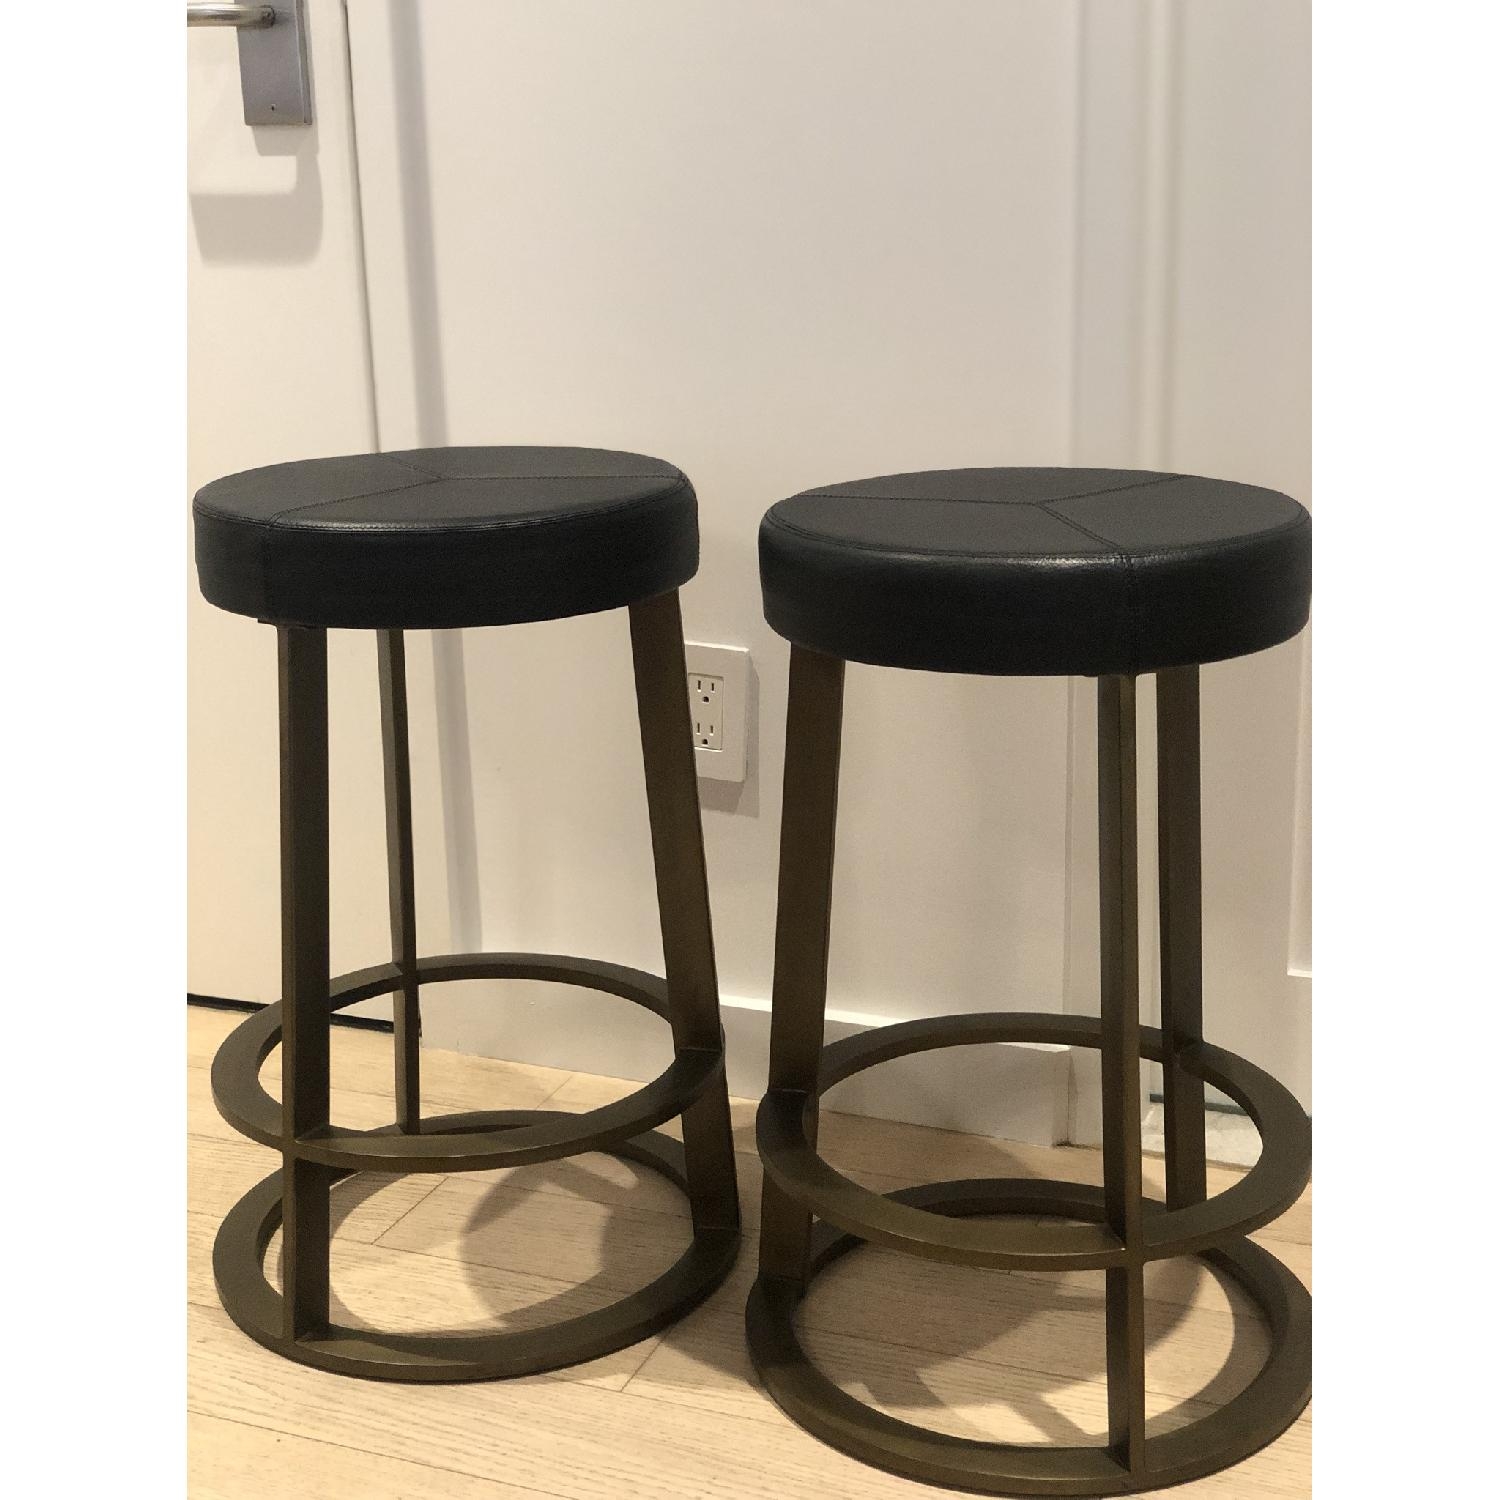 CB2 Leather Reverb Stools - image-5